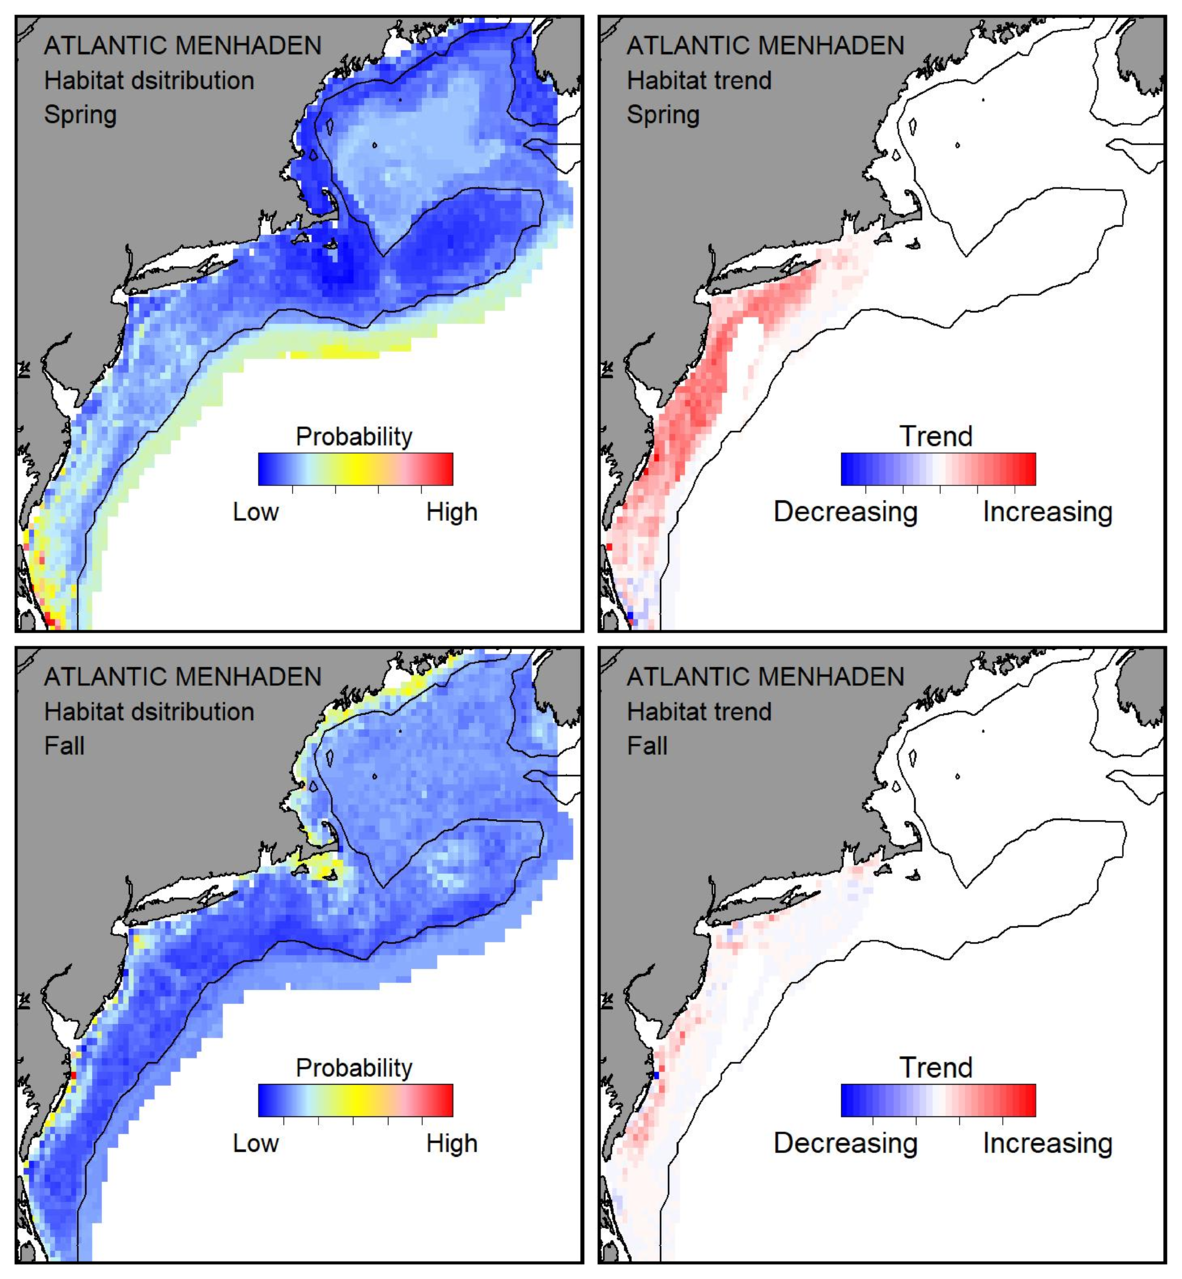 Top row: Probable habitat distribution for Atlantic menhaden showing the highest concentration and increasing trend in the Gulf of Maine during the spring. Bottom row: Probable habitat distribution for Atlantic menhaden showing the highest concentration and increasing trend in the Gulf of Maine during the fall.